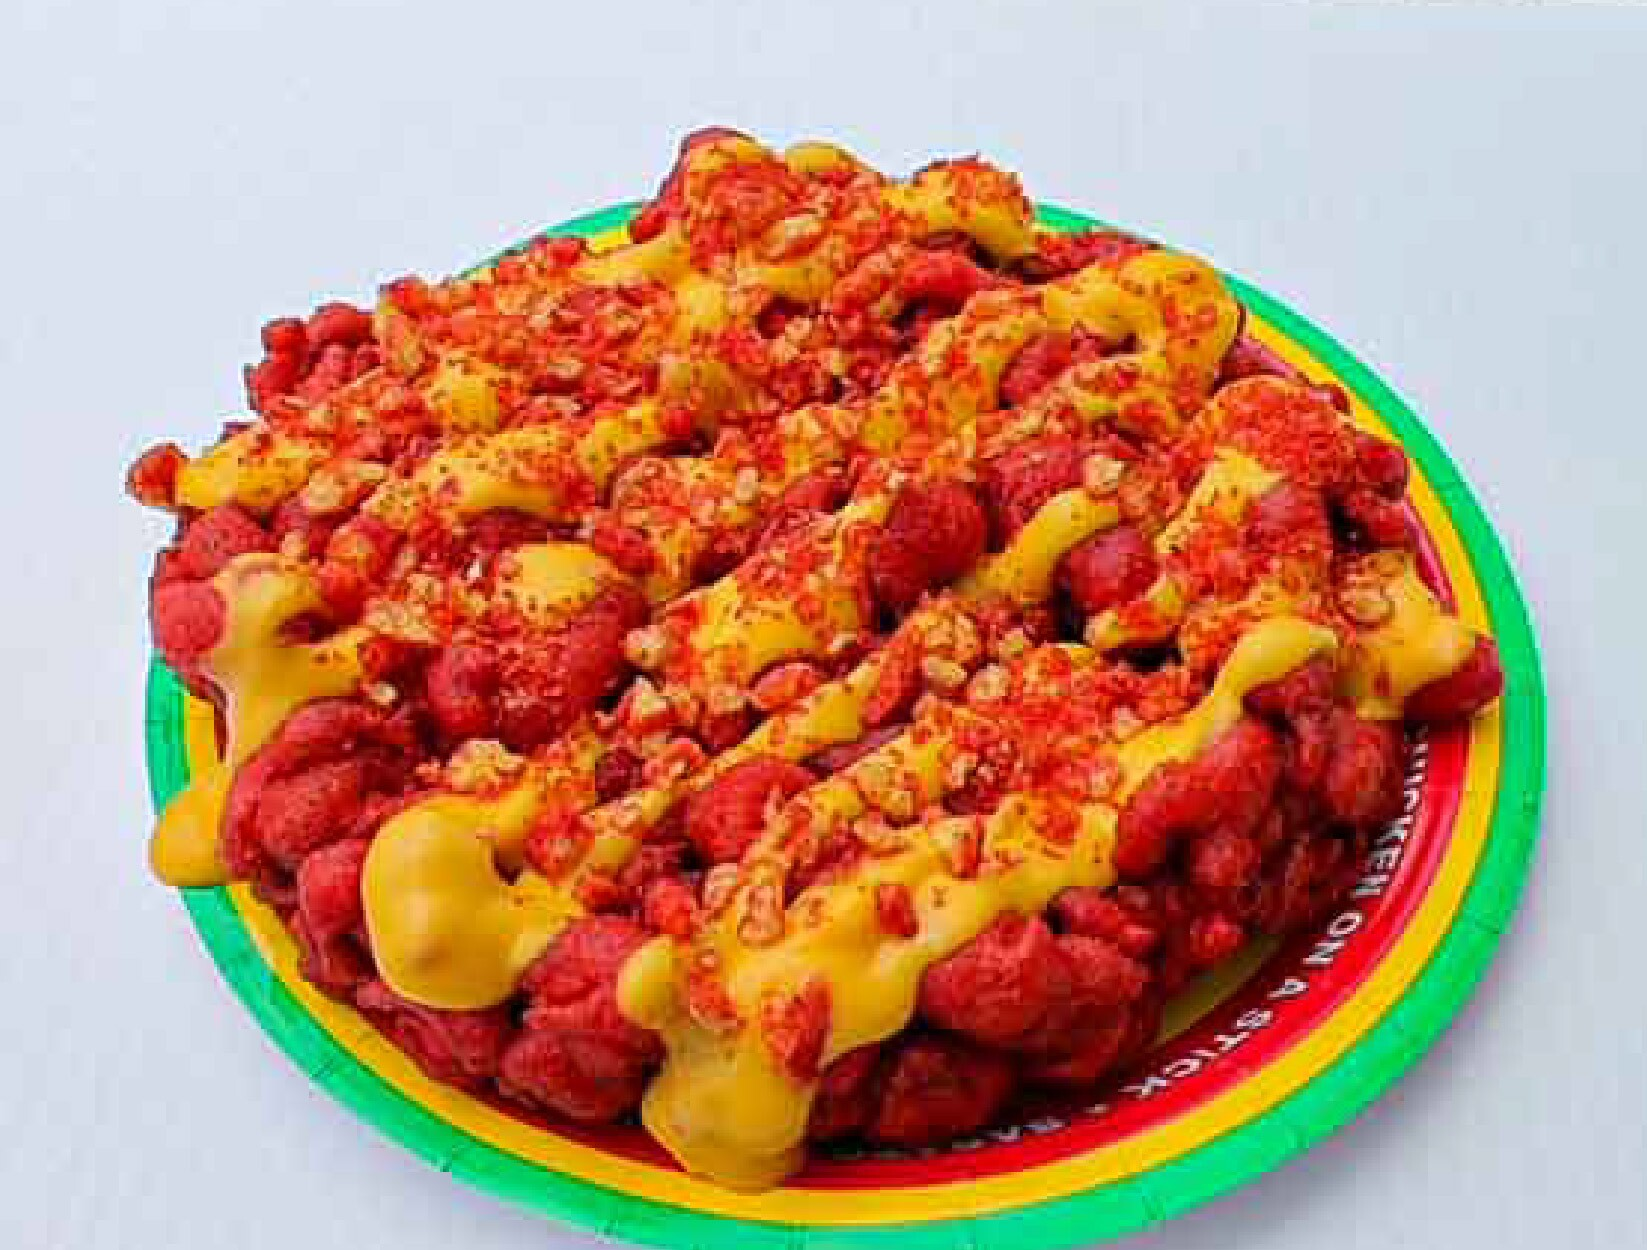 New-Food_flaming-hot-cheetos-funnel-cake.jpg